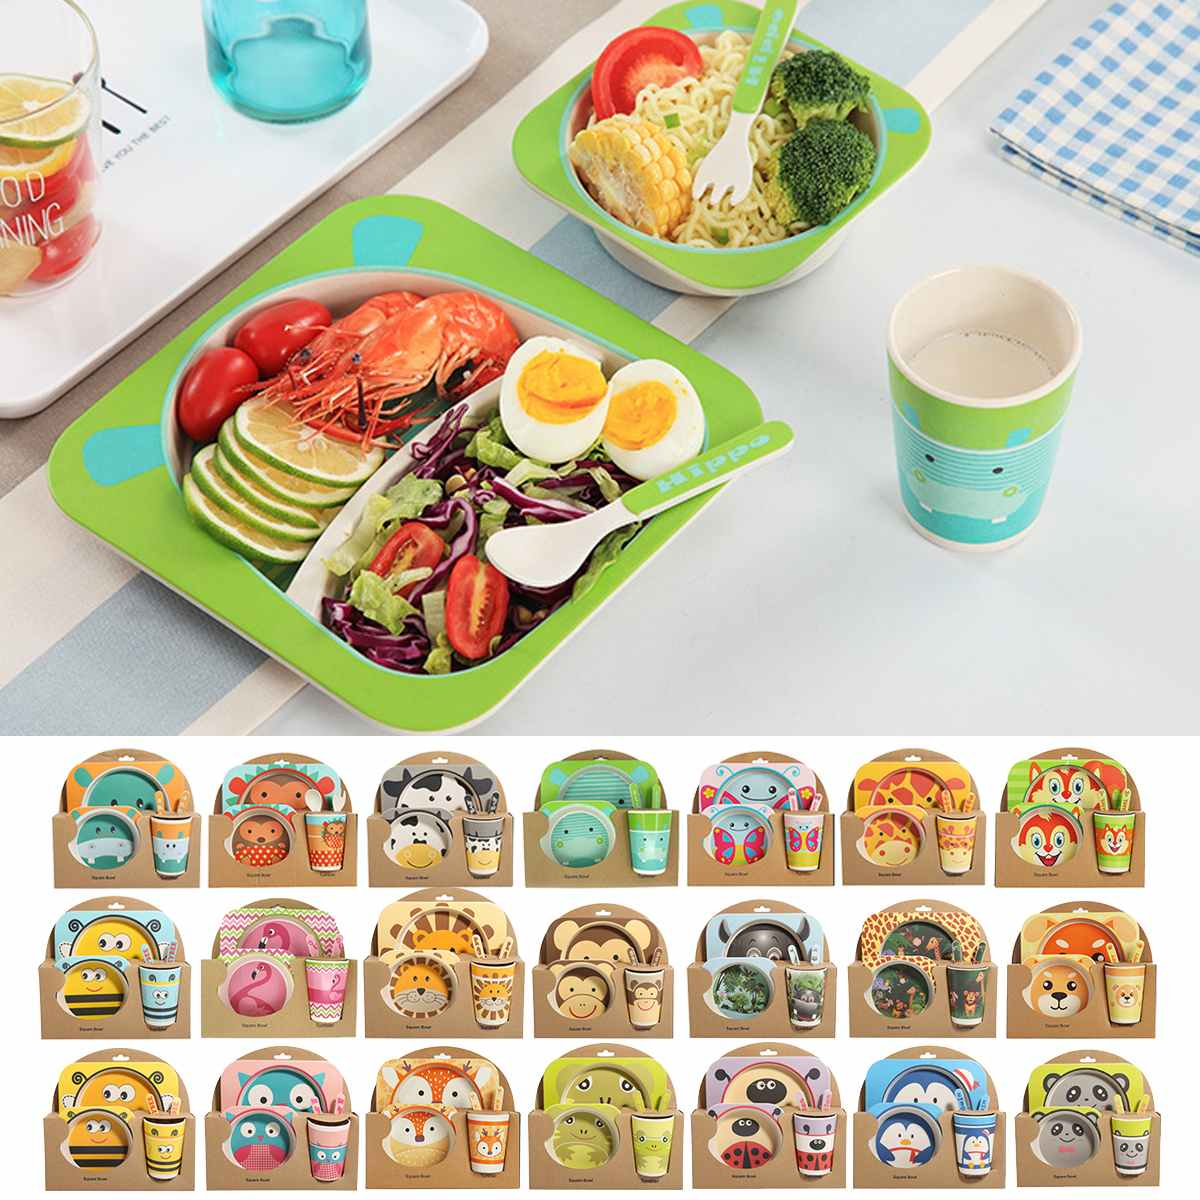 5Pcs/Set Baby Feeding Bowl Plate Dishes Fork Spoon Cup Children Tableware Bamboo Fiber Kids Cartoon Separation Feeding Plate